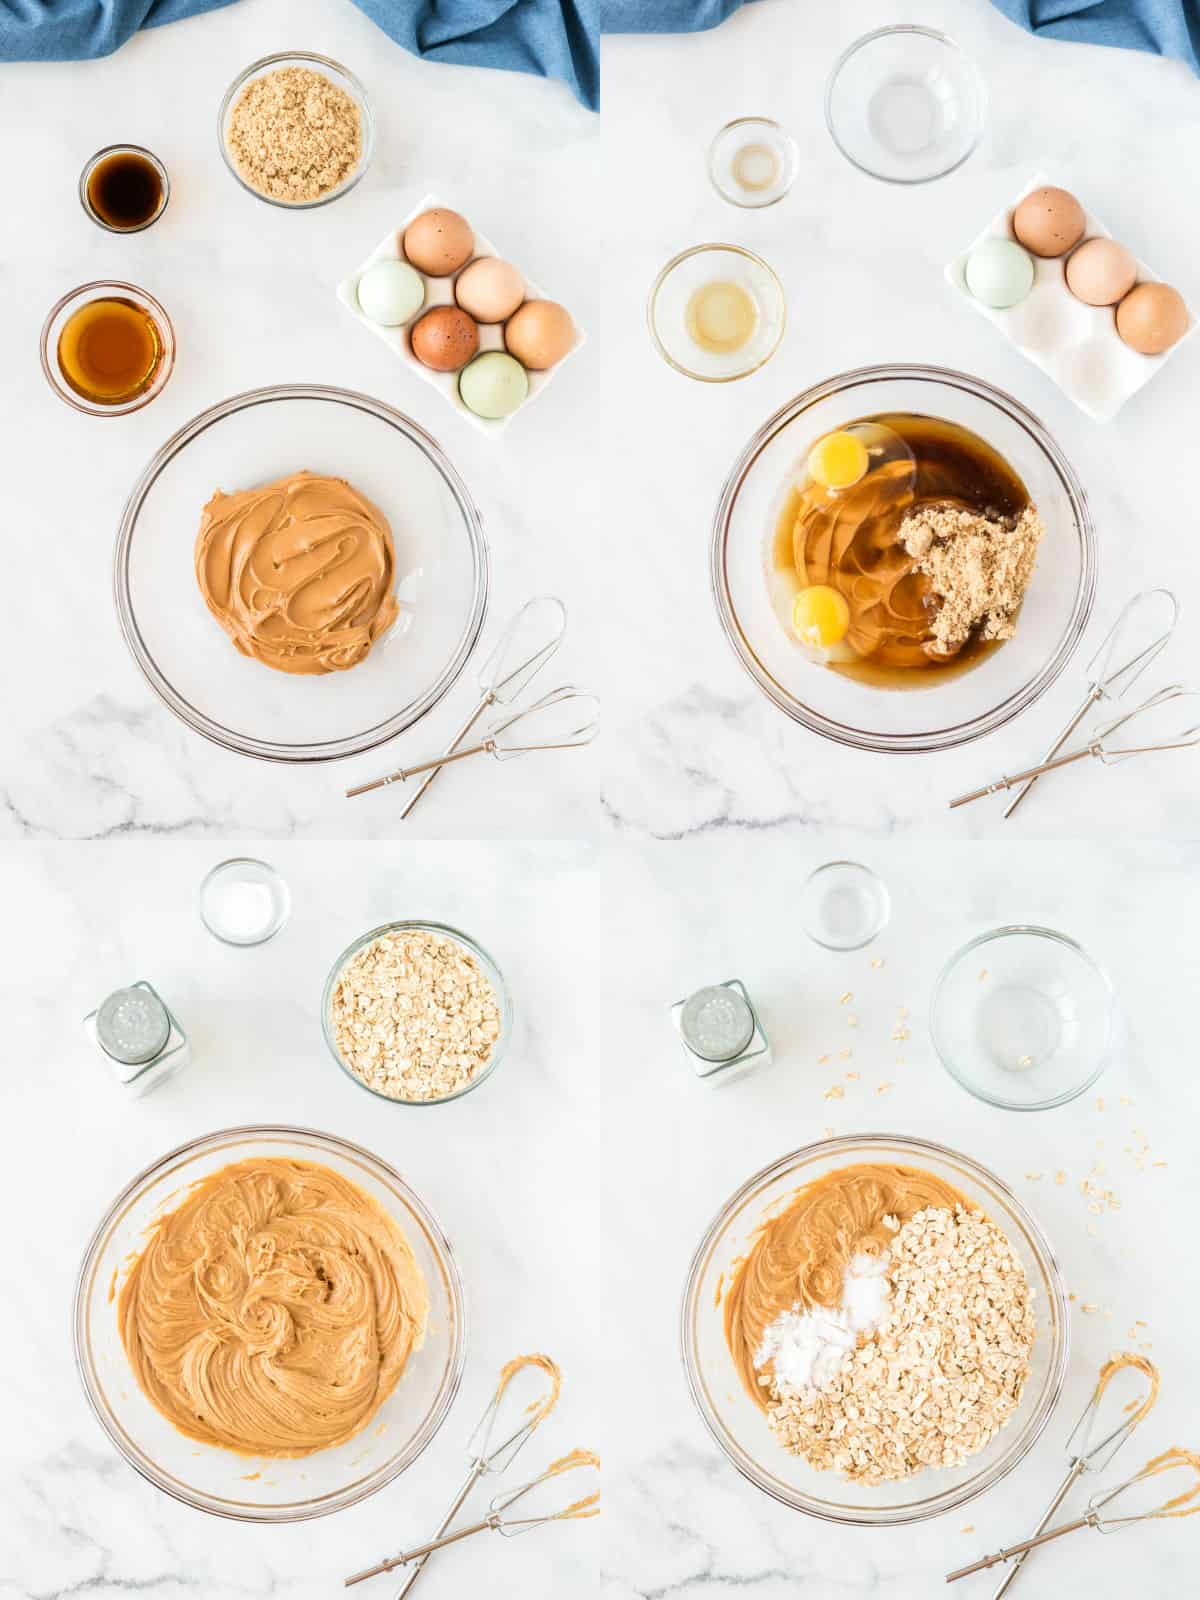 collage image showing the batter ingredients being mixed together